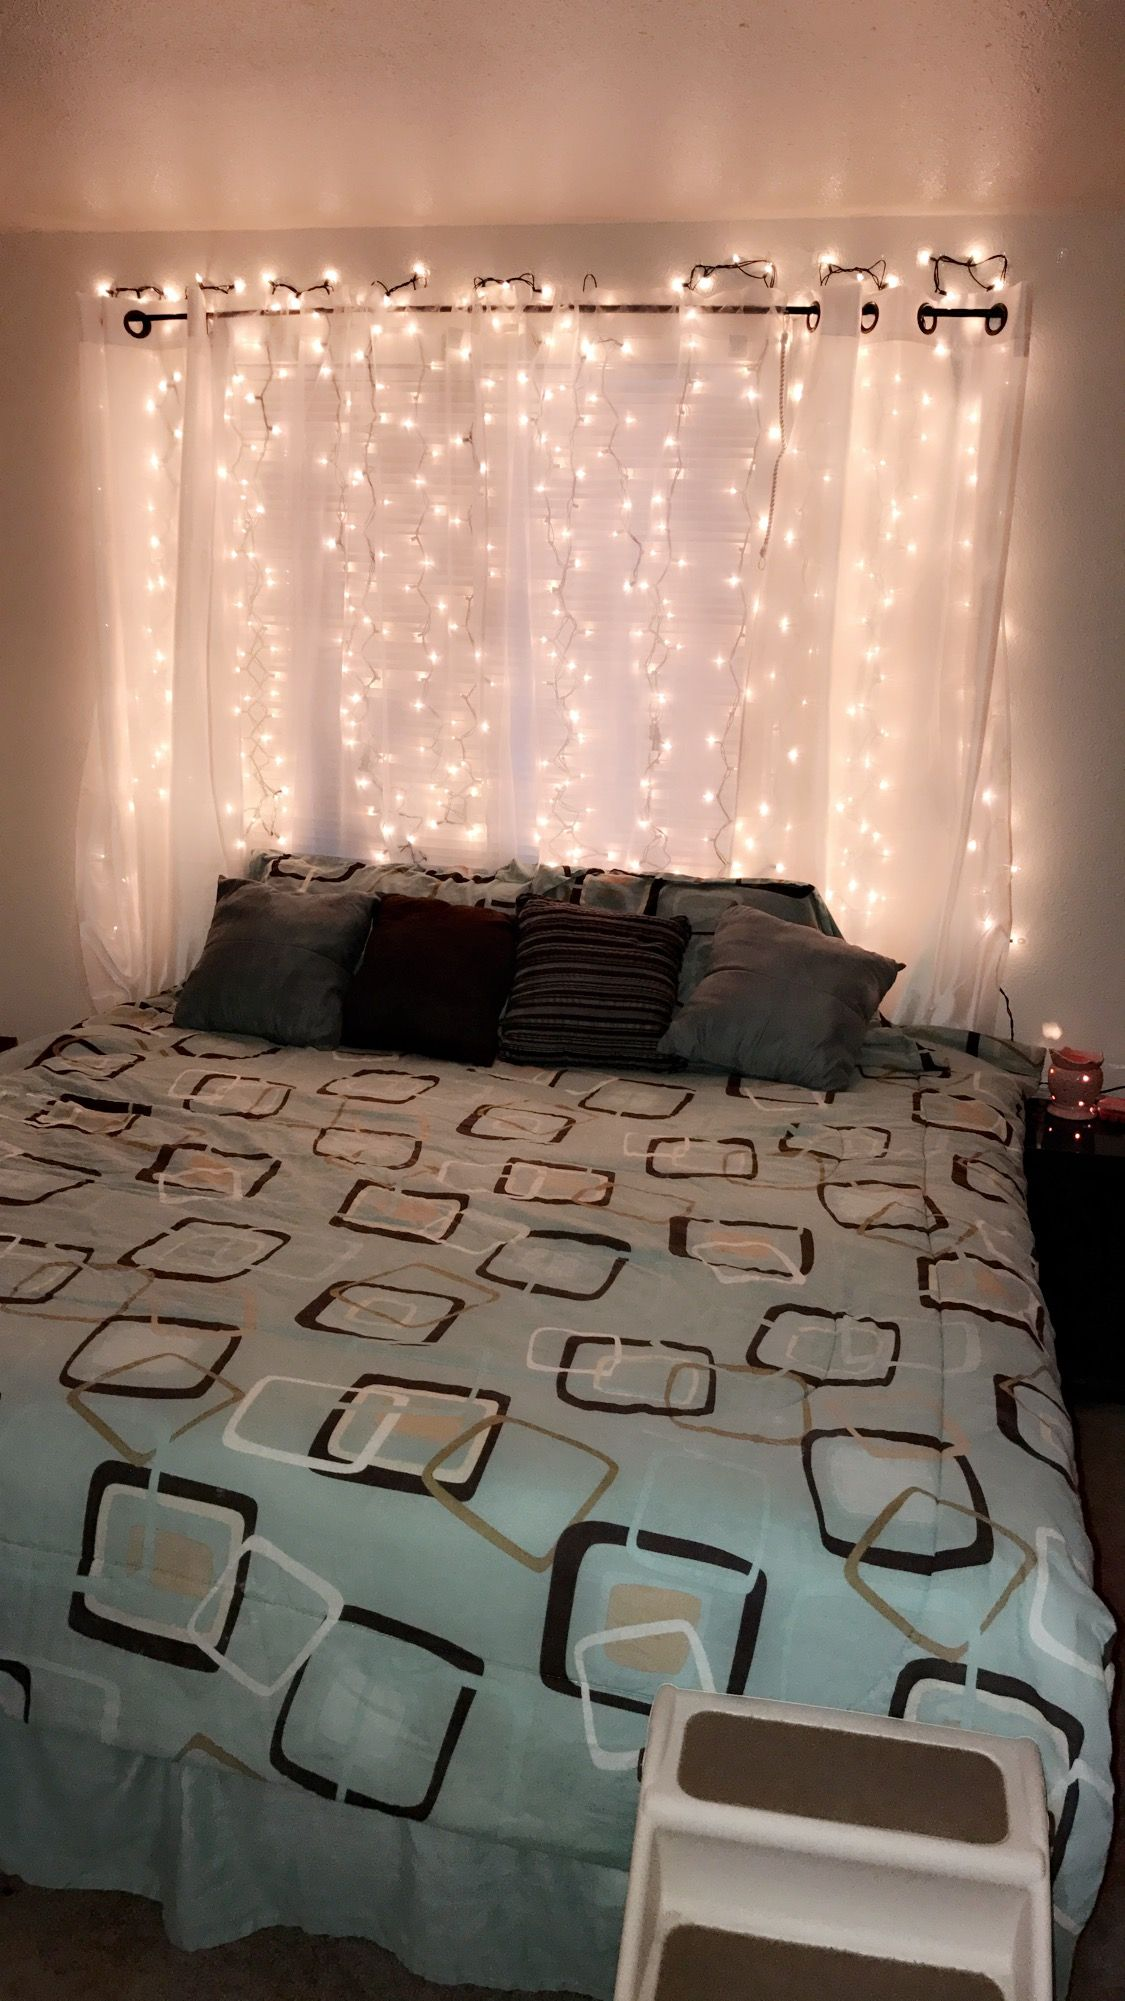 Light Up Curtain Headboard Diy King Bed 2 Boxes 300 Lights Each